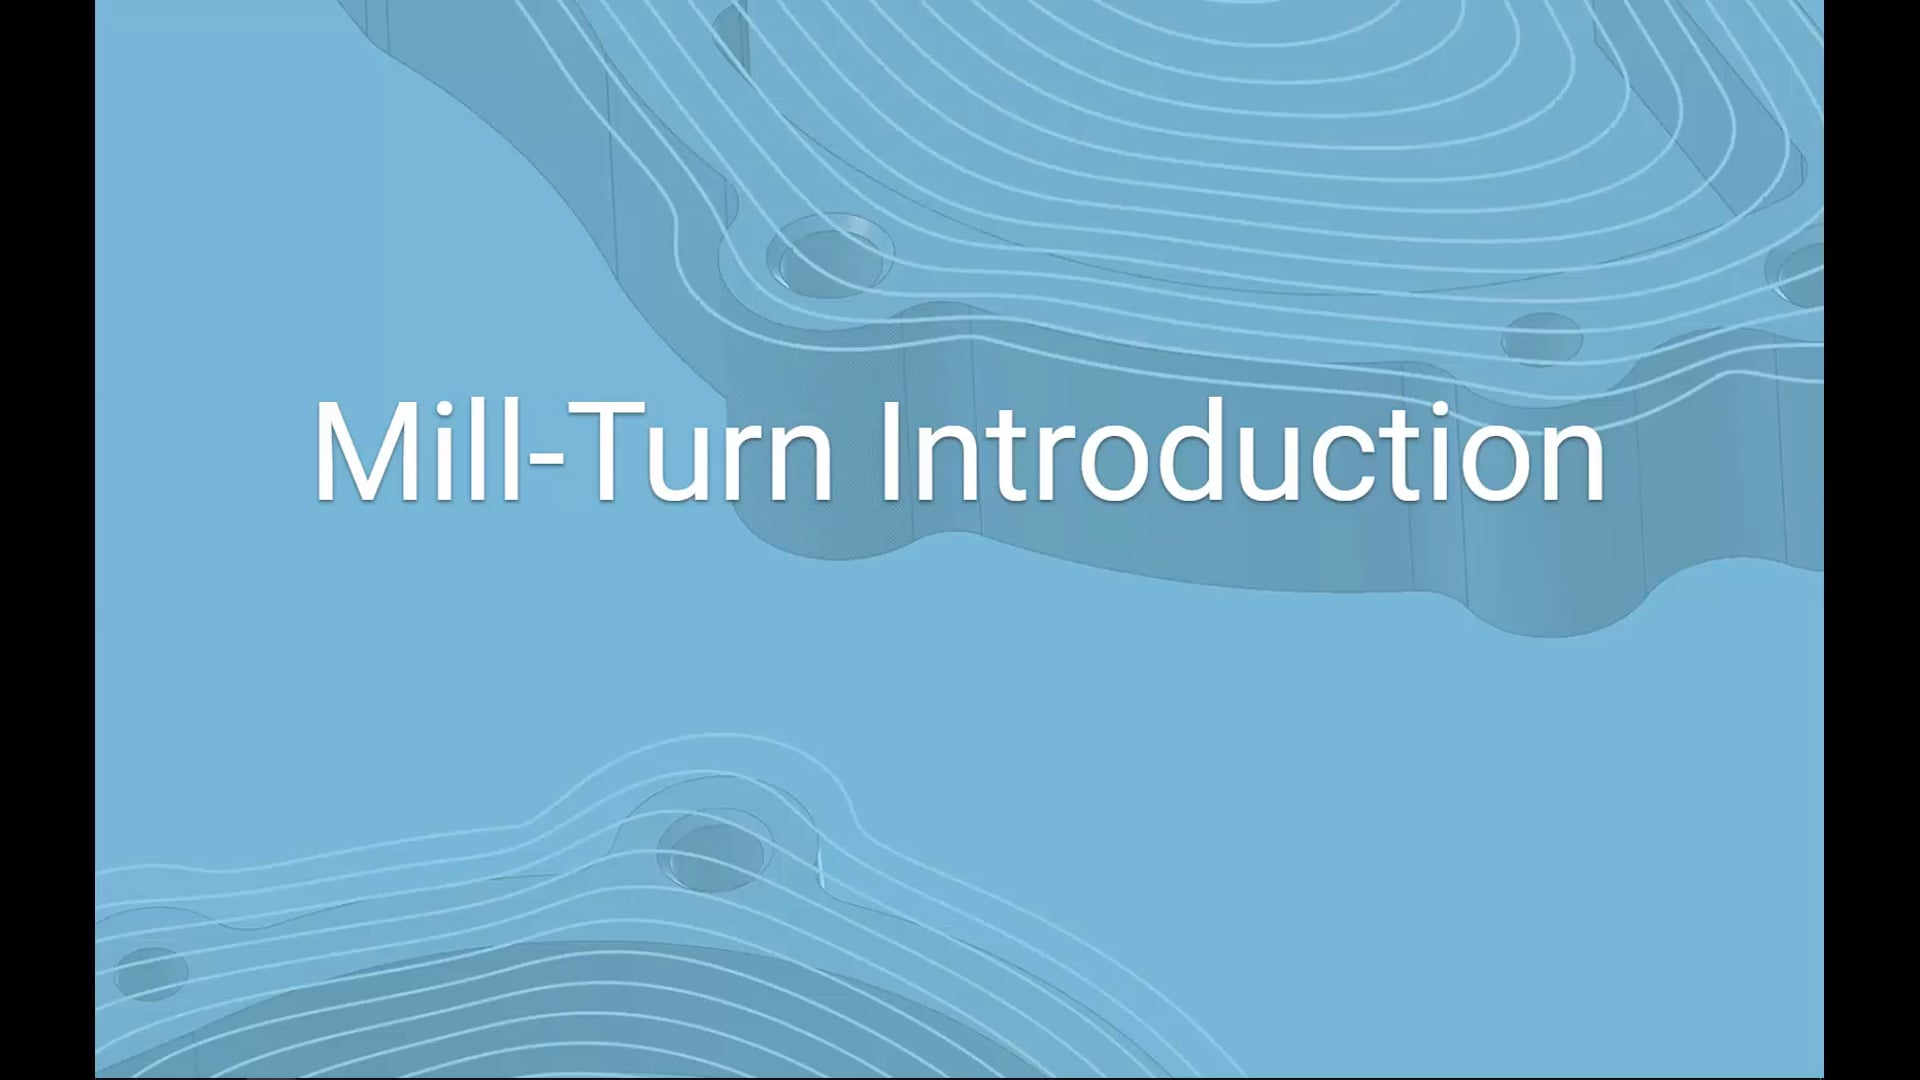 Mill-Turn Introduction